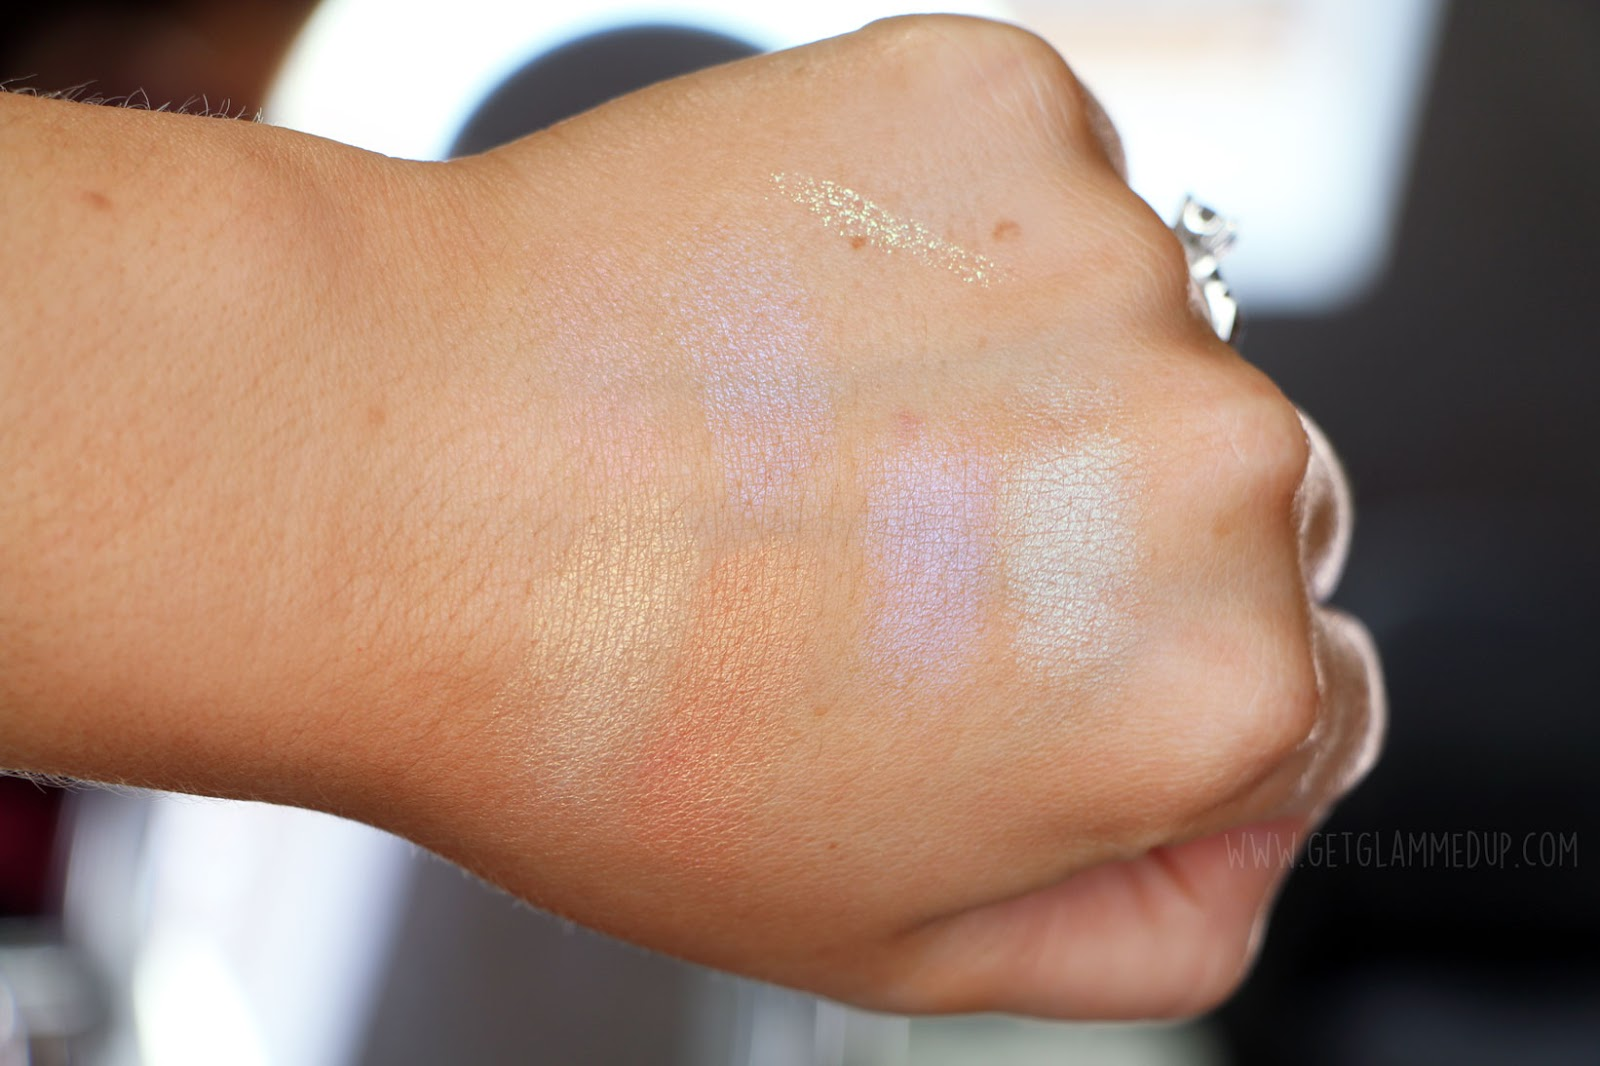 e.l.f. Cosmetics Prismatic Highlighting Duo Swatches